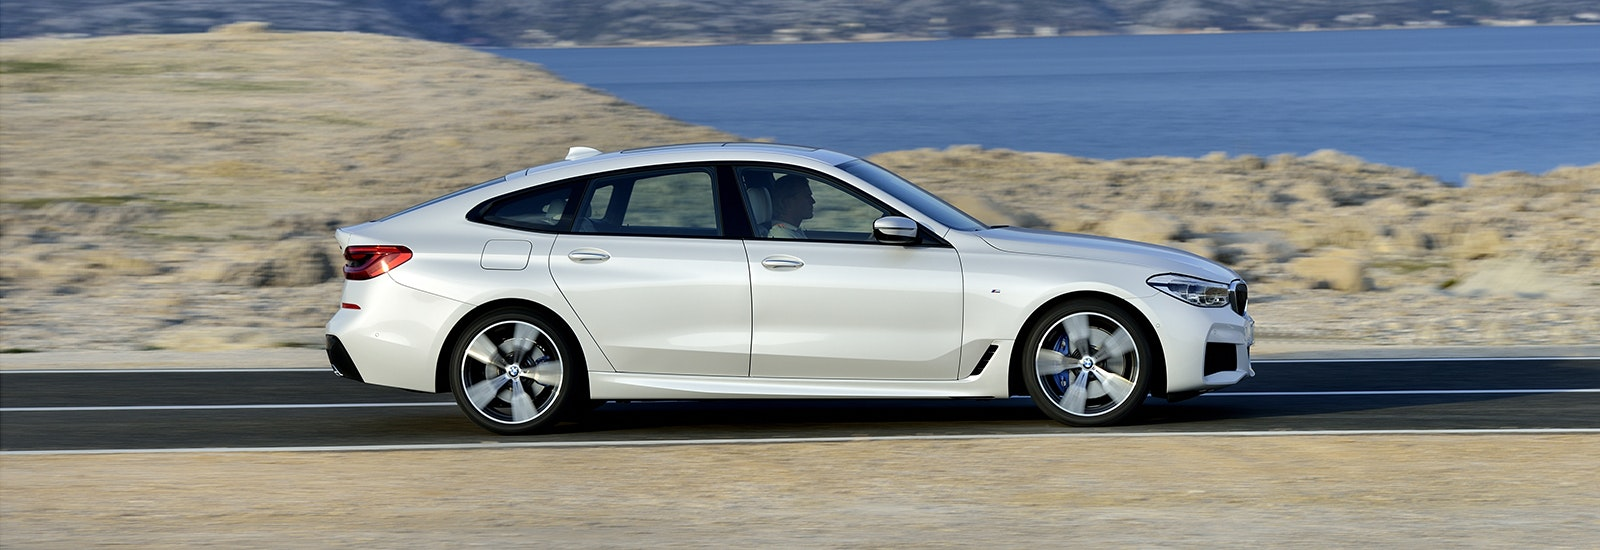 2018 Bmw 6 Series Gt Price Specs And Release Date Carwow